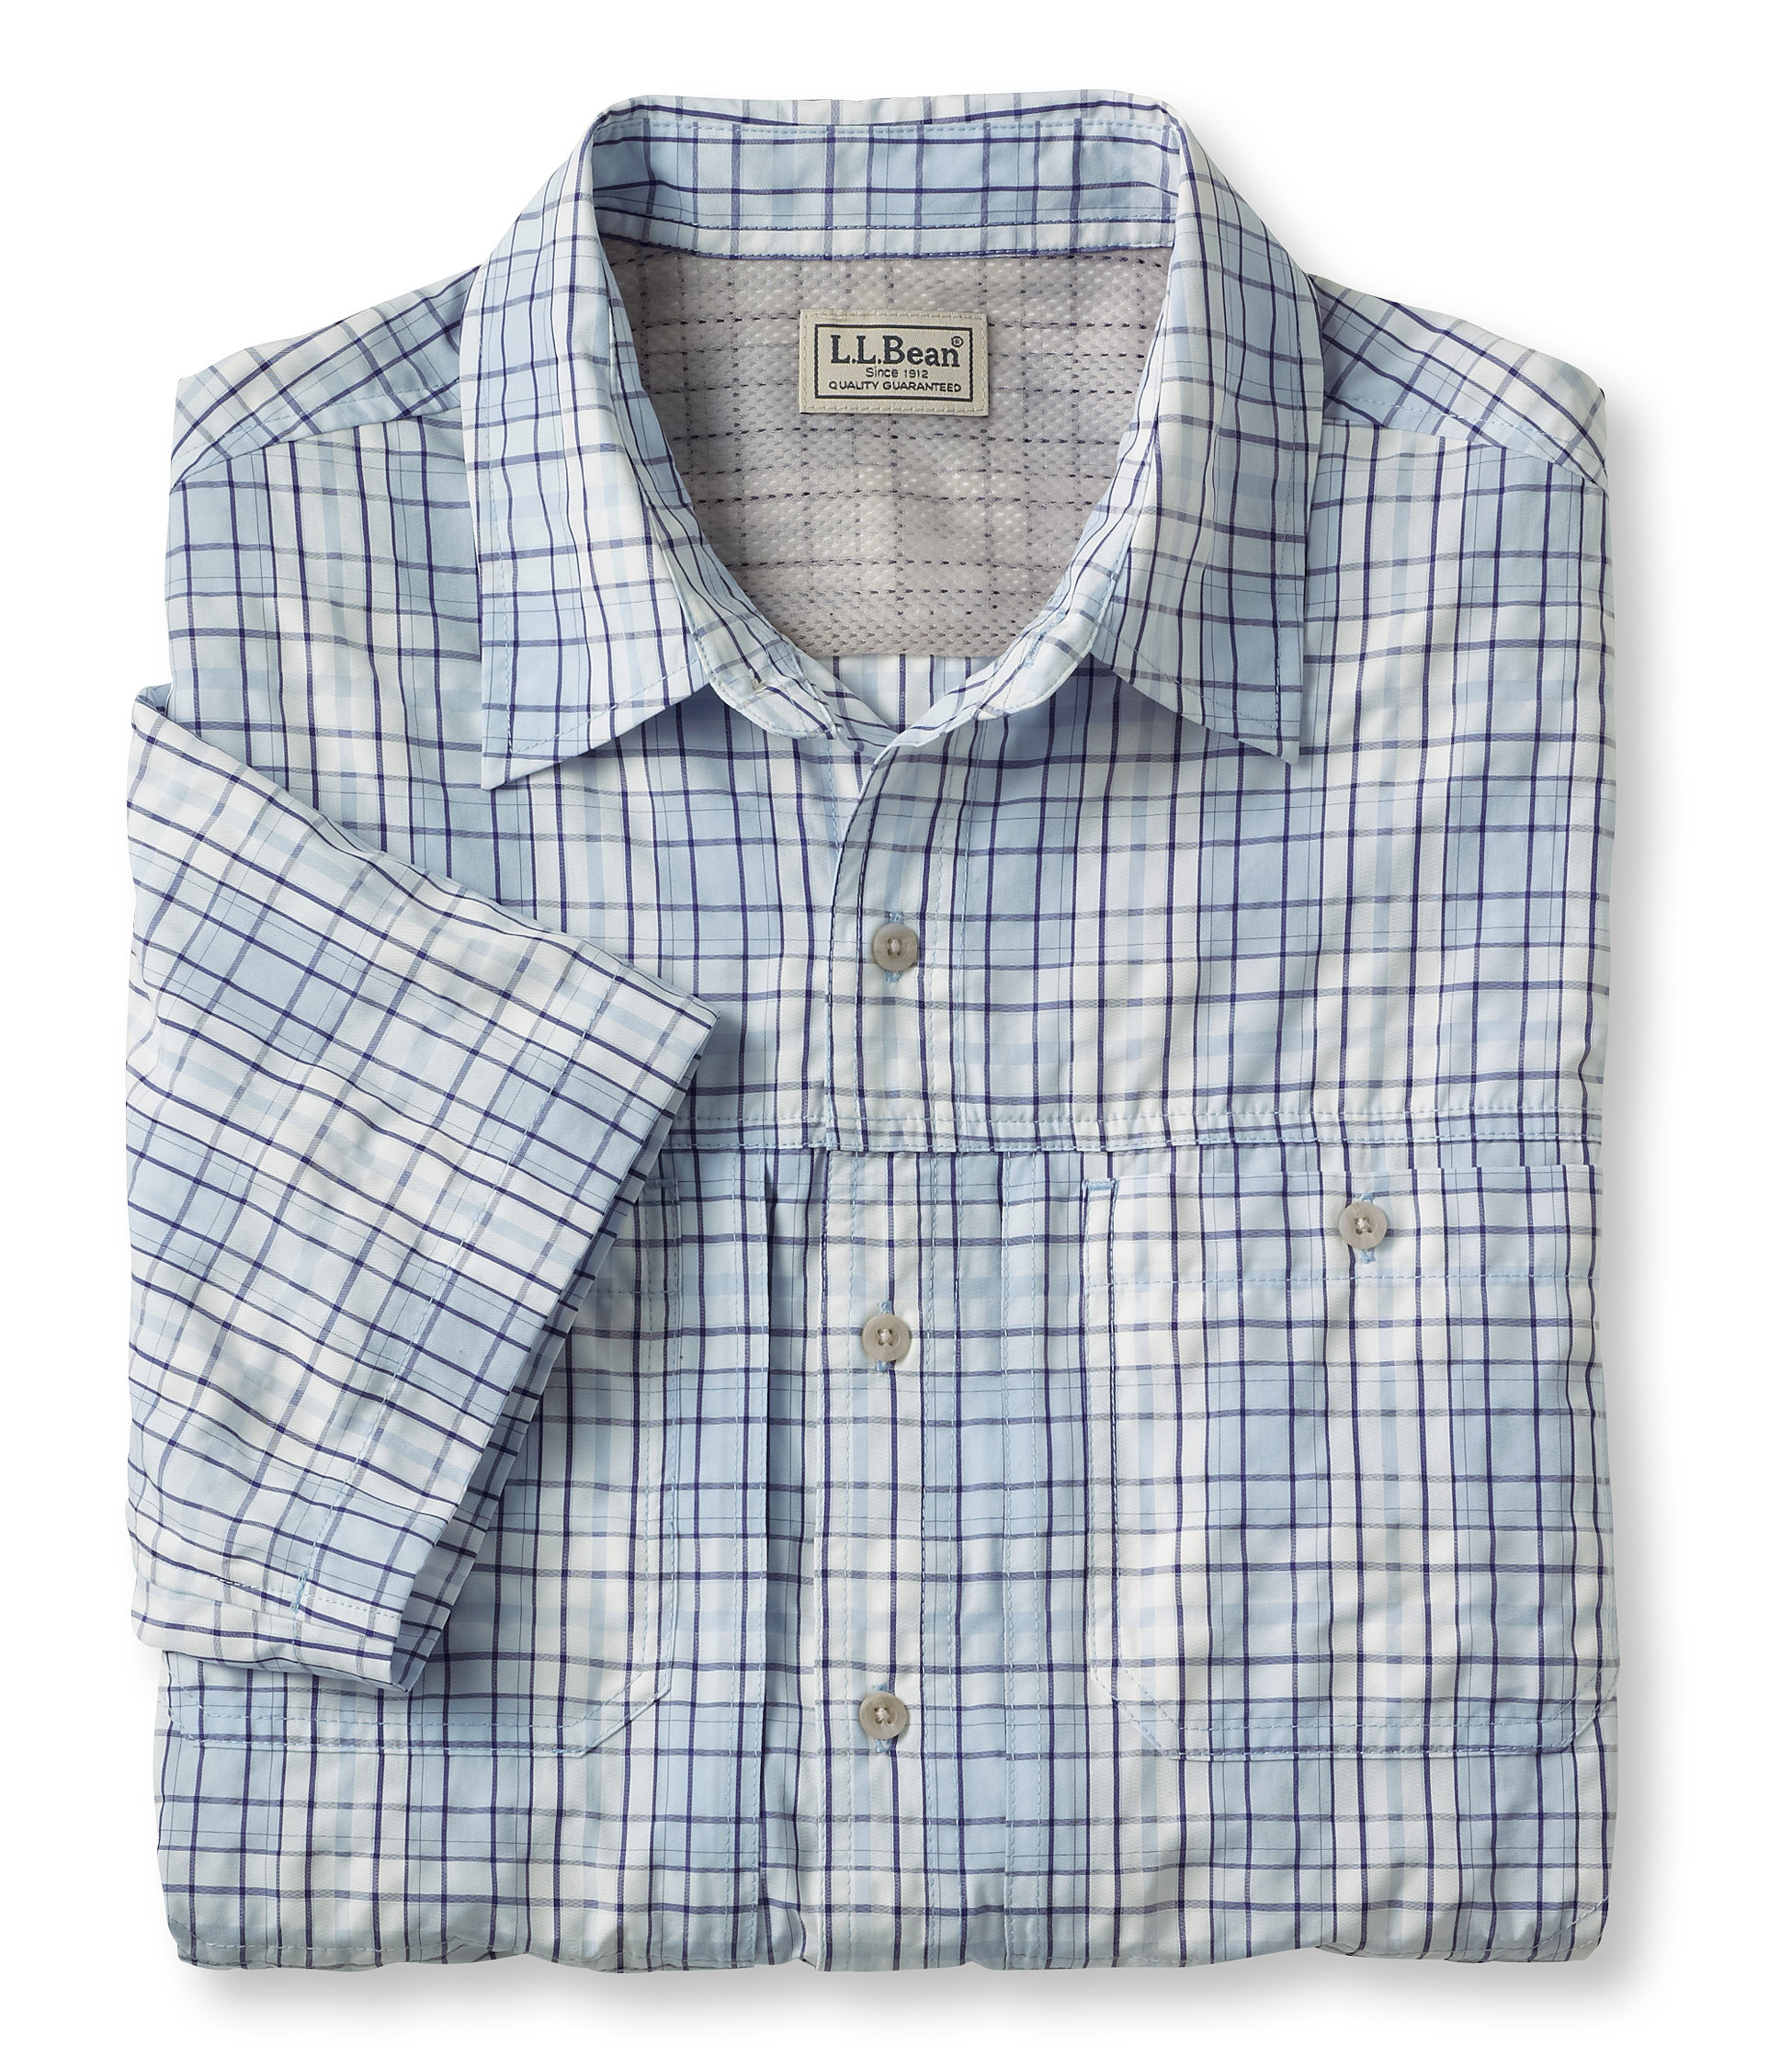 L.L.Bean Cool Weave Trail Shirt, Short-Sleeve Tall